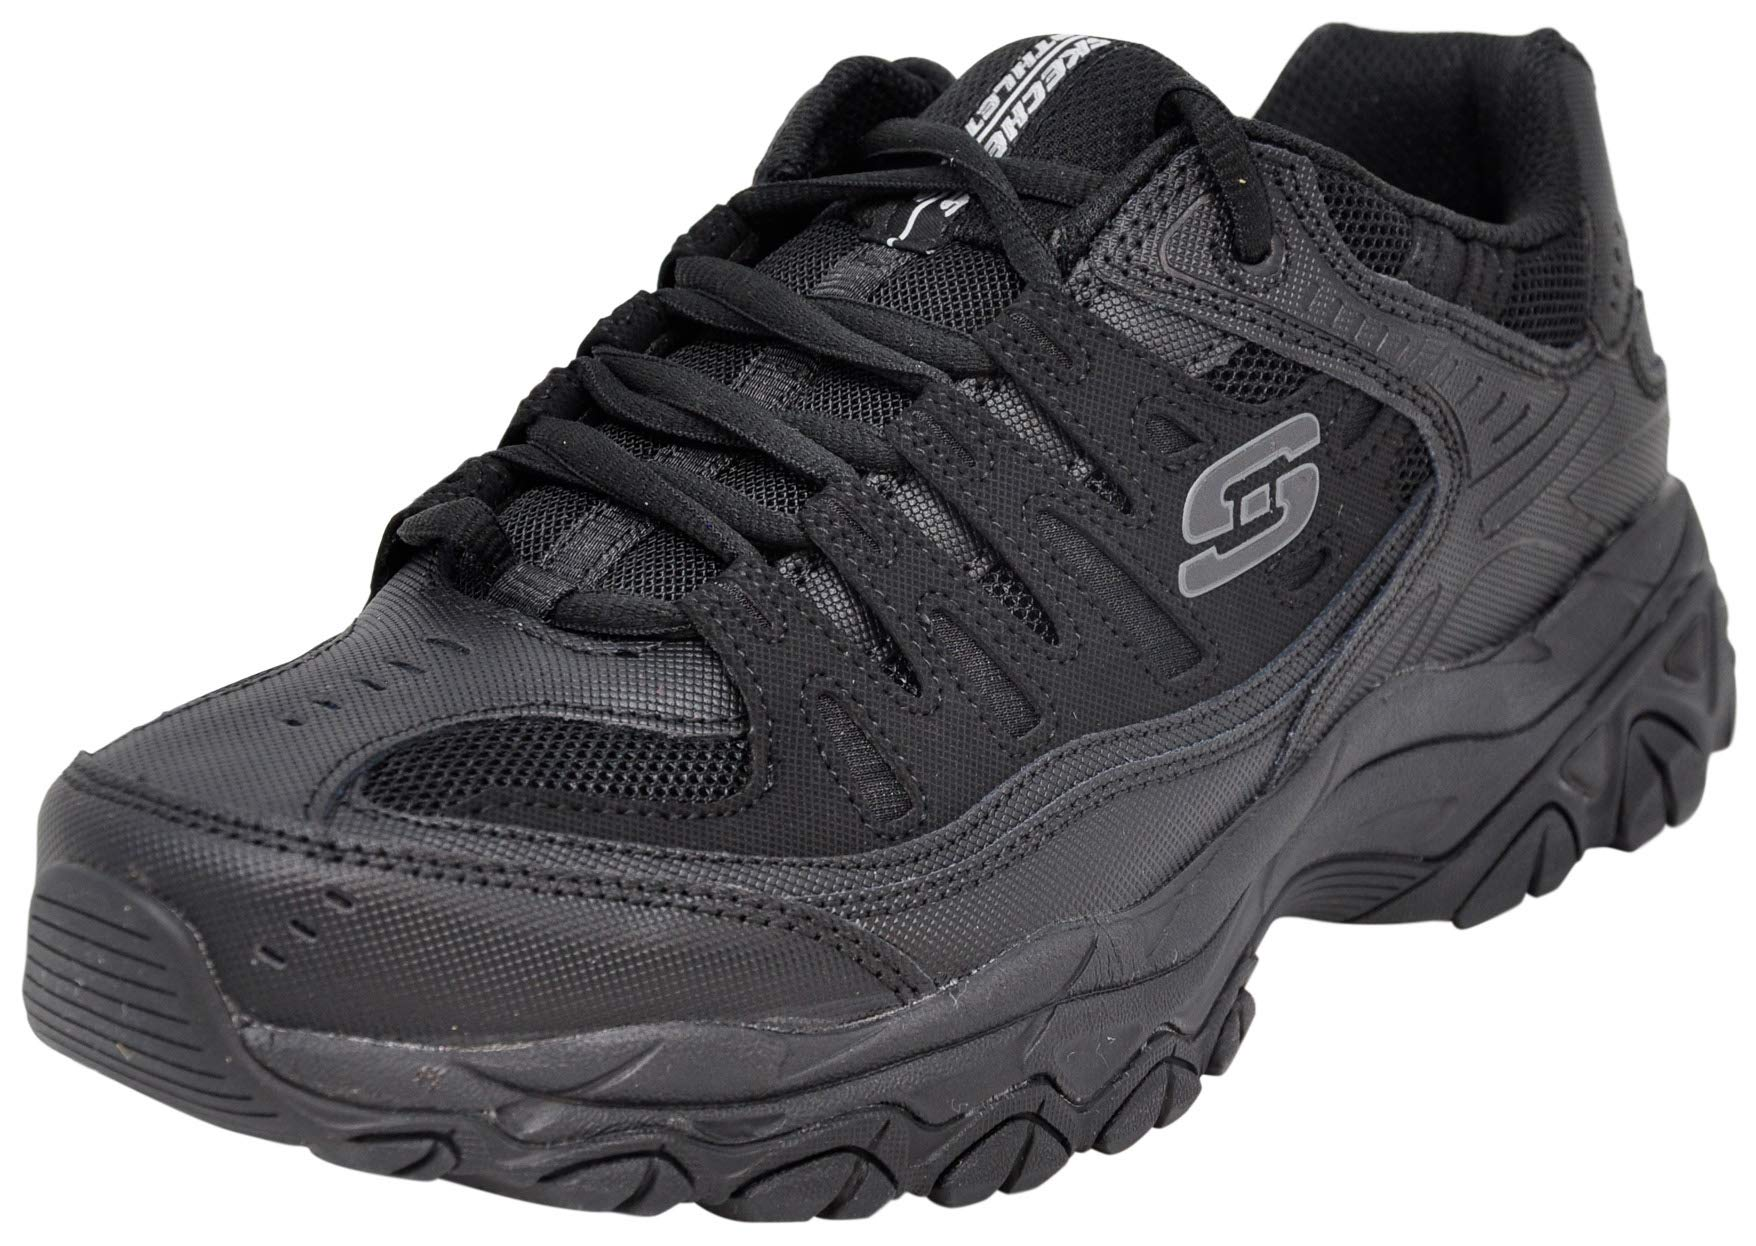 Skechers Men Afterburn Lace-Up Sneaker, Black/Black, 8 M US by Skechers